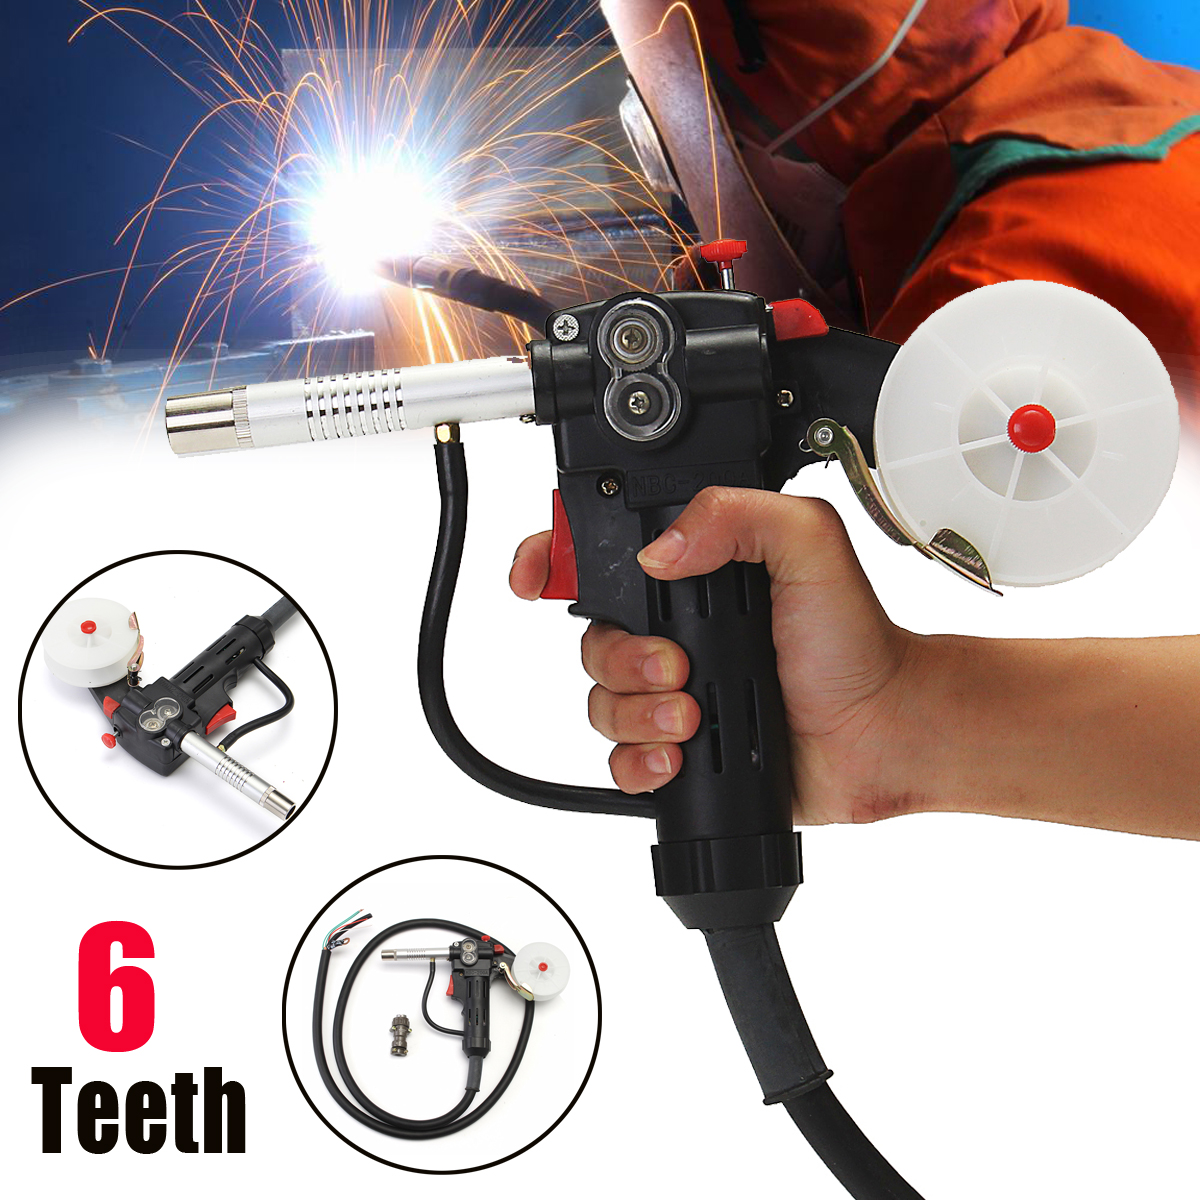 6 Feet MIG Welding Spool Gun Push Pull Feeder Aluminum Steel Welding Torch +2m Wire Cable